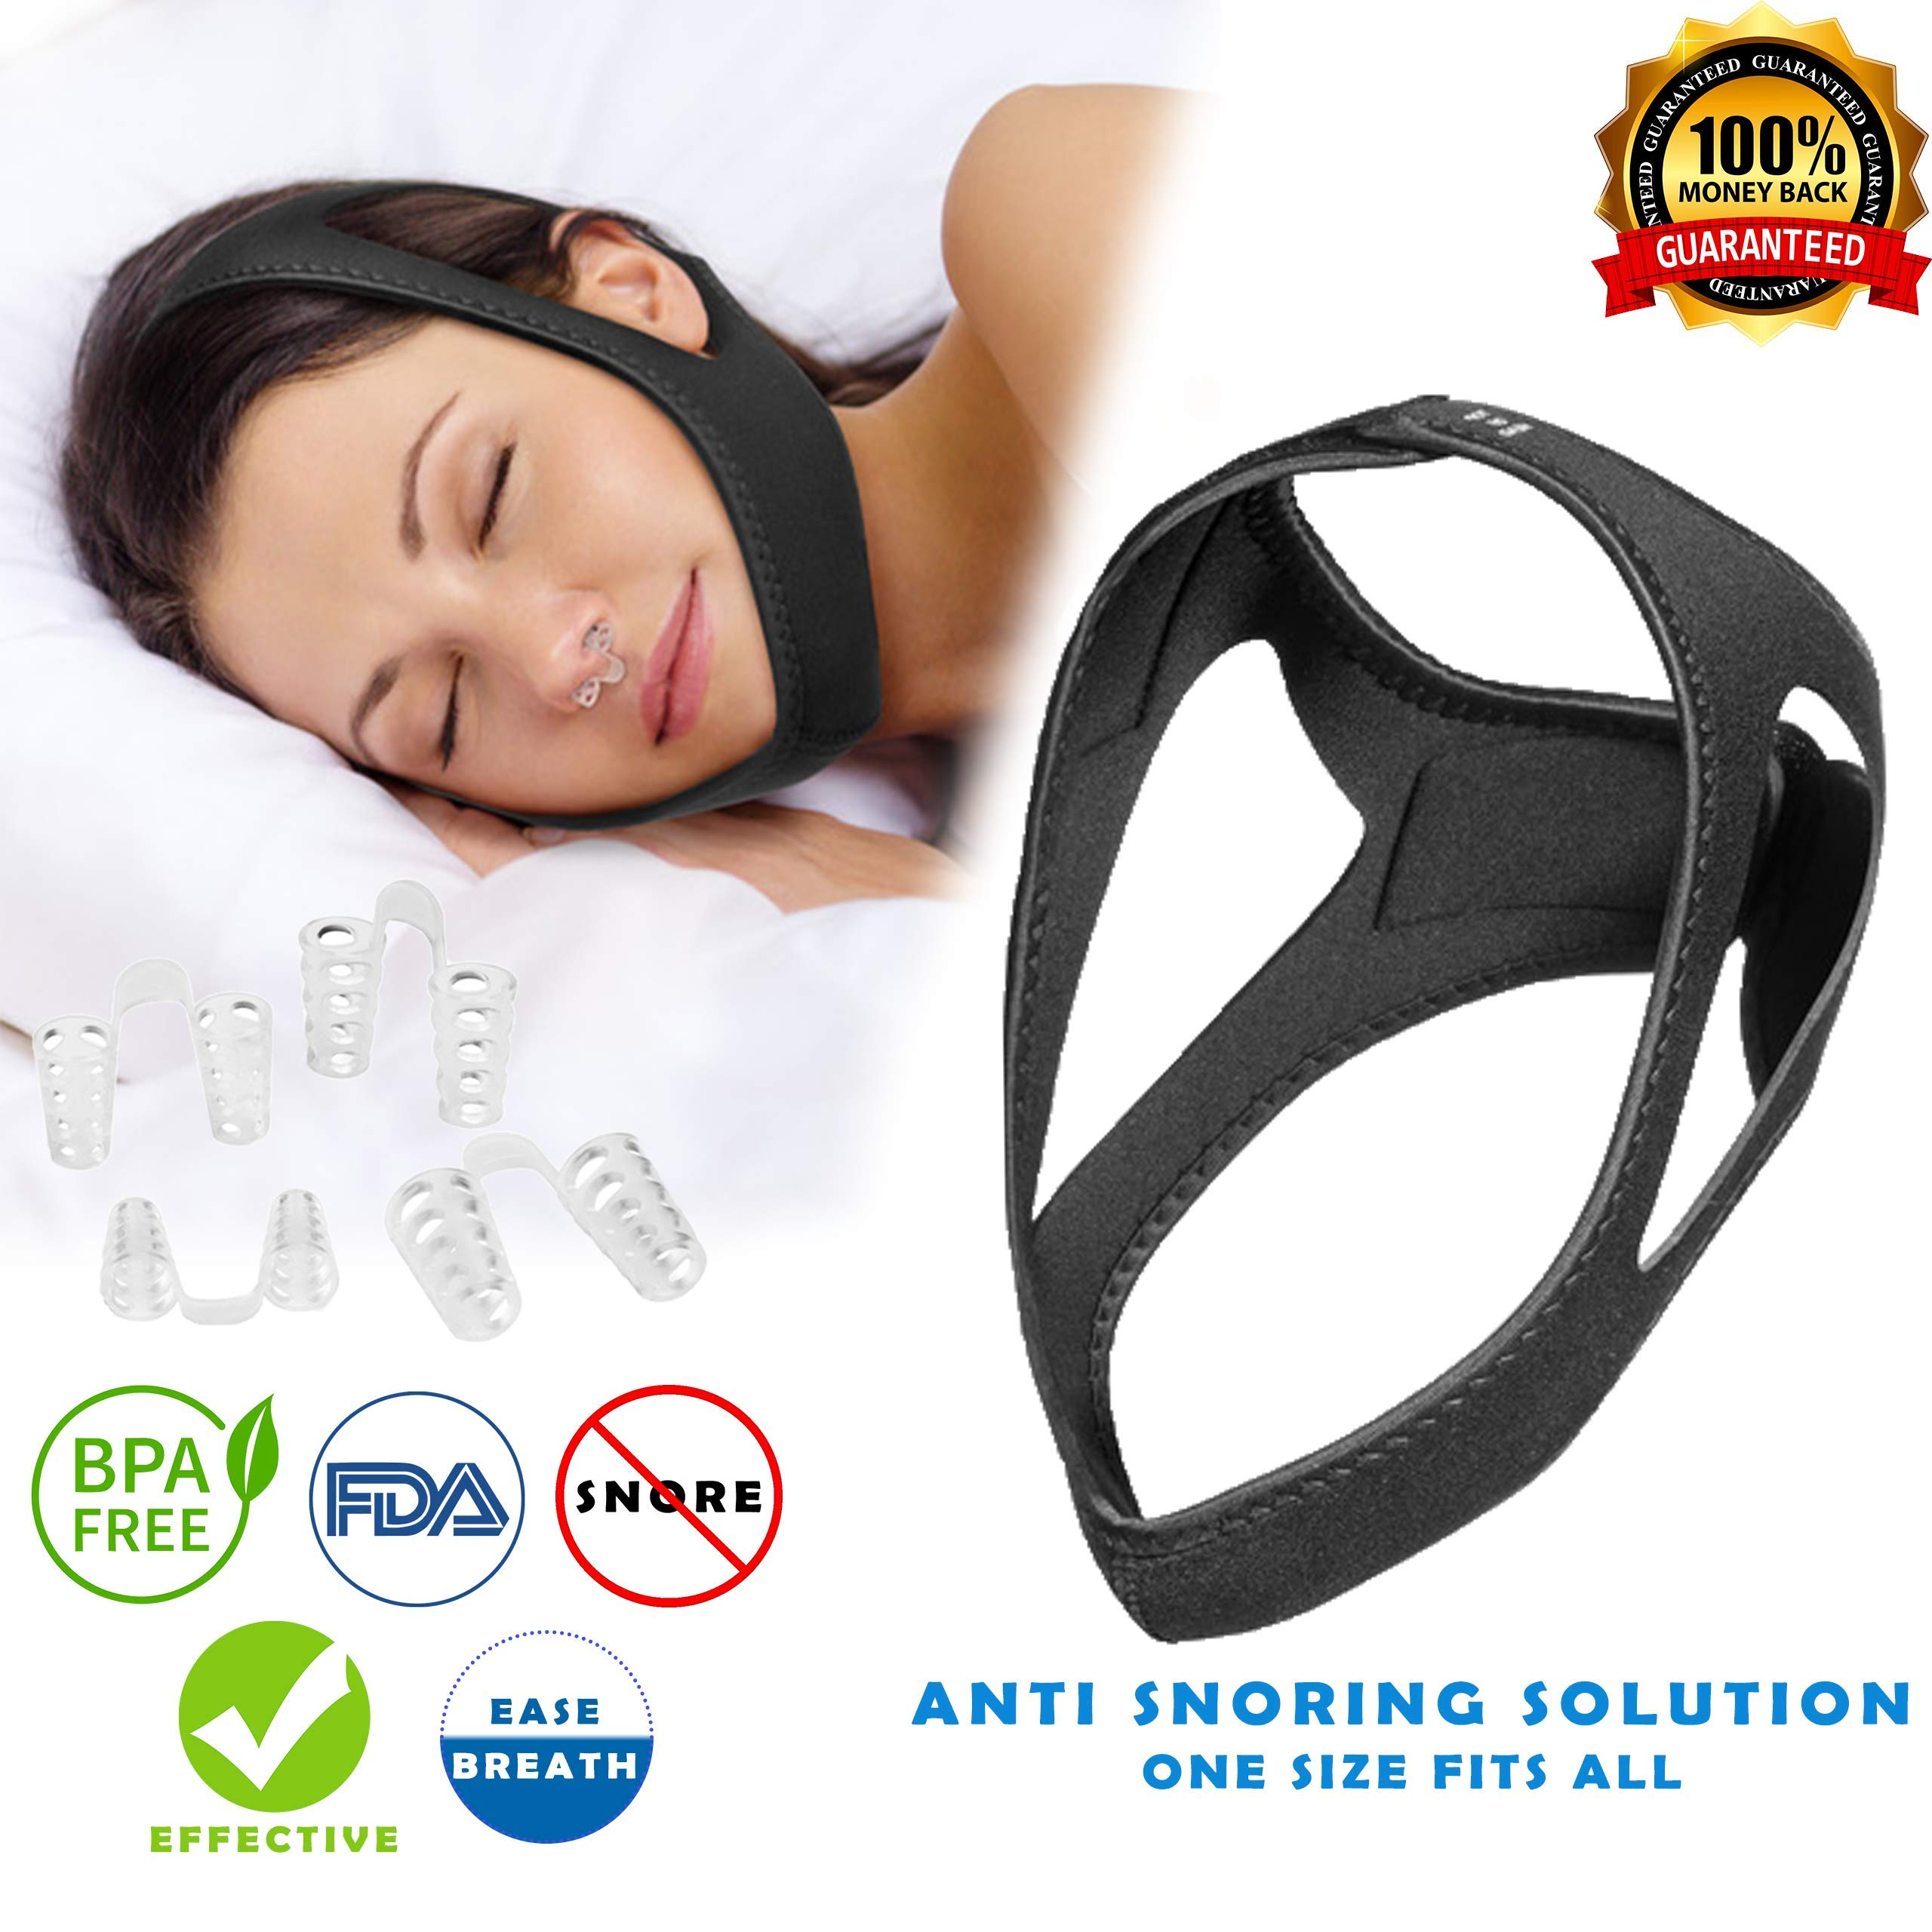 Anti Snoring Chin Strap & Nose Vents - Most Effective Anti Snoring Solution and Anti Snoring Device, Sleep Aid and Stop Snore for Men and Women, Highest Quality